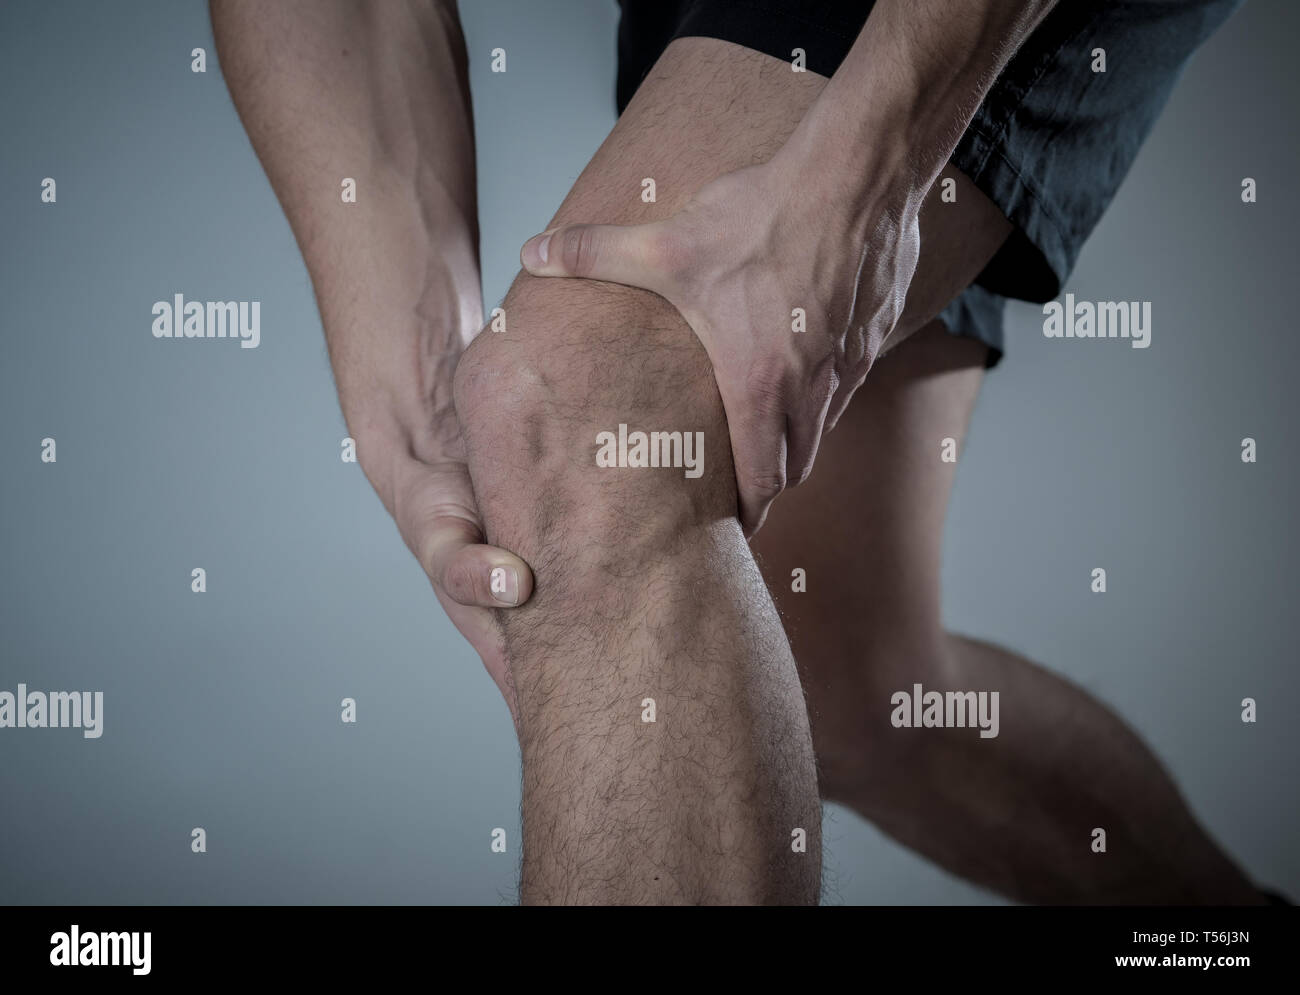 386b4f41e9 Young fit man holding knee with hands in pain after suffering muscle injury  broken bone leg